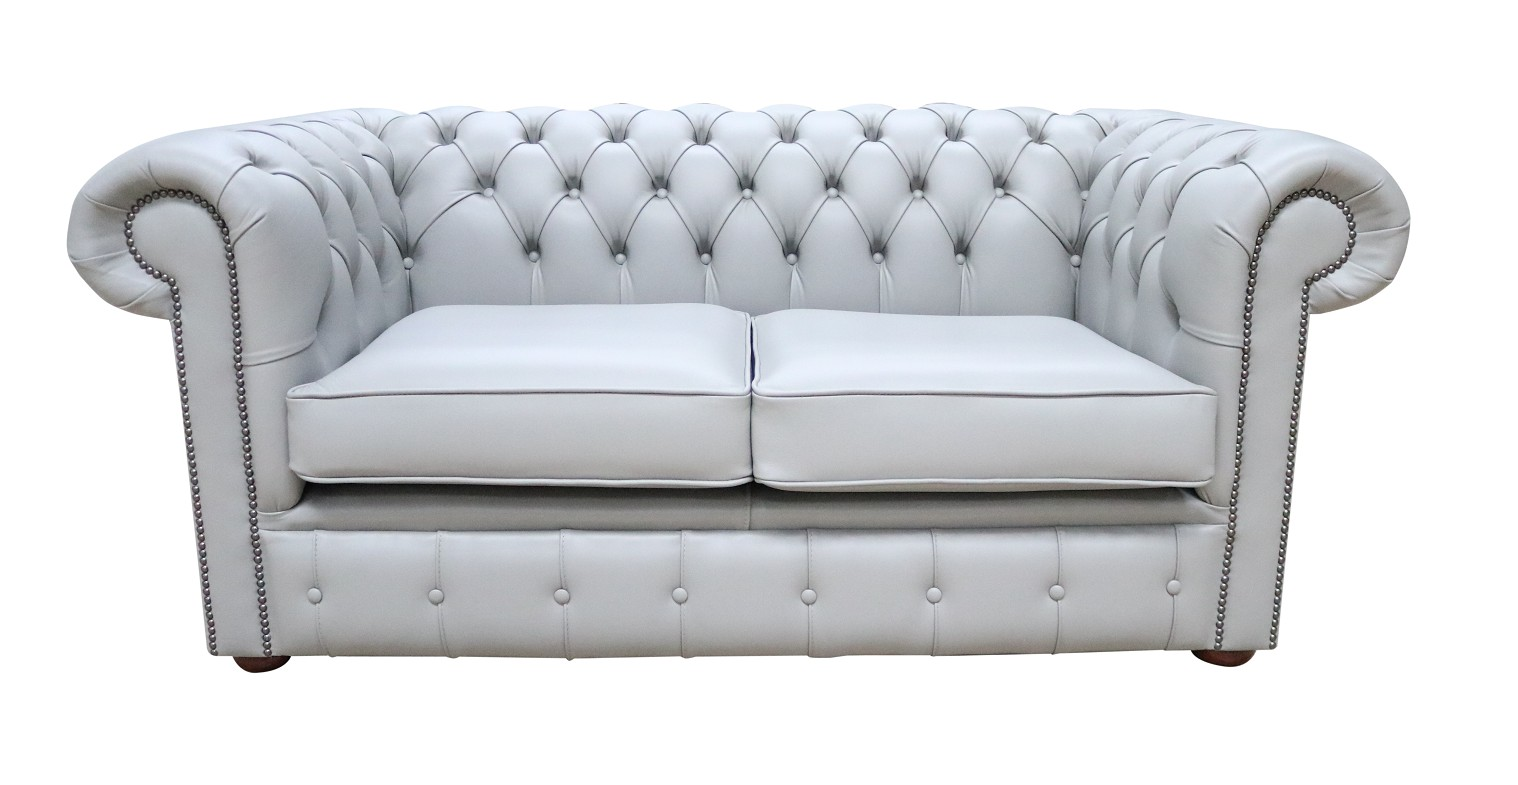 Chesterfield 2 Seater Sofa Settee Vele Huxley Grey Leather Sofa Offer